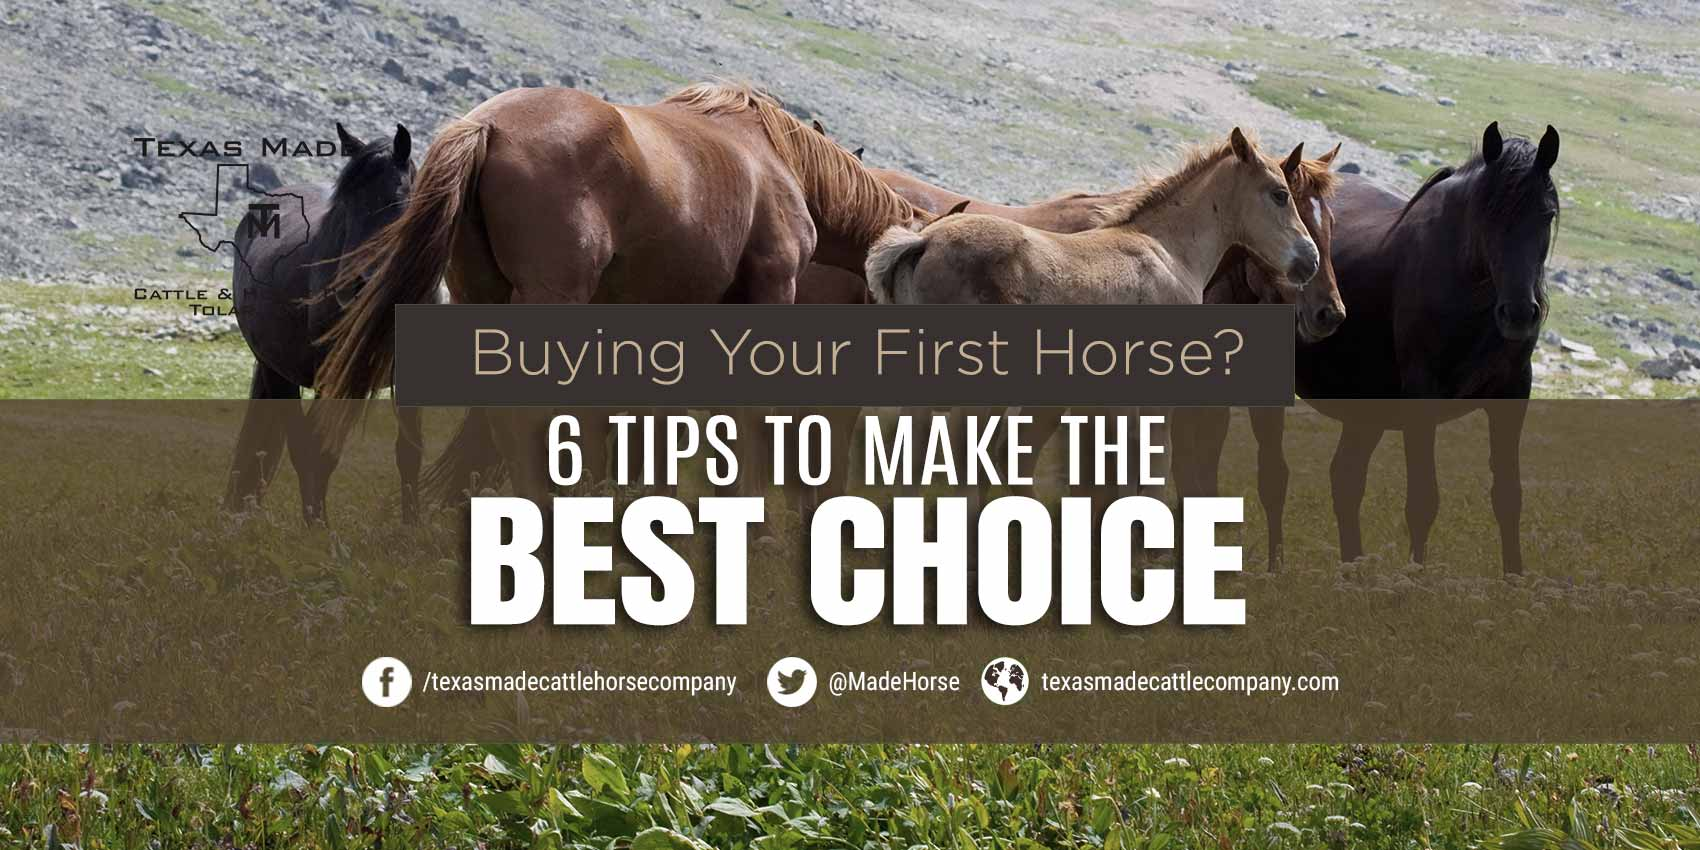 Buying Your First Horse? 6 Tips to Make the Best Choice